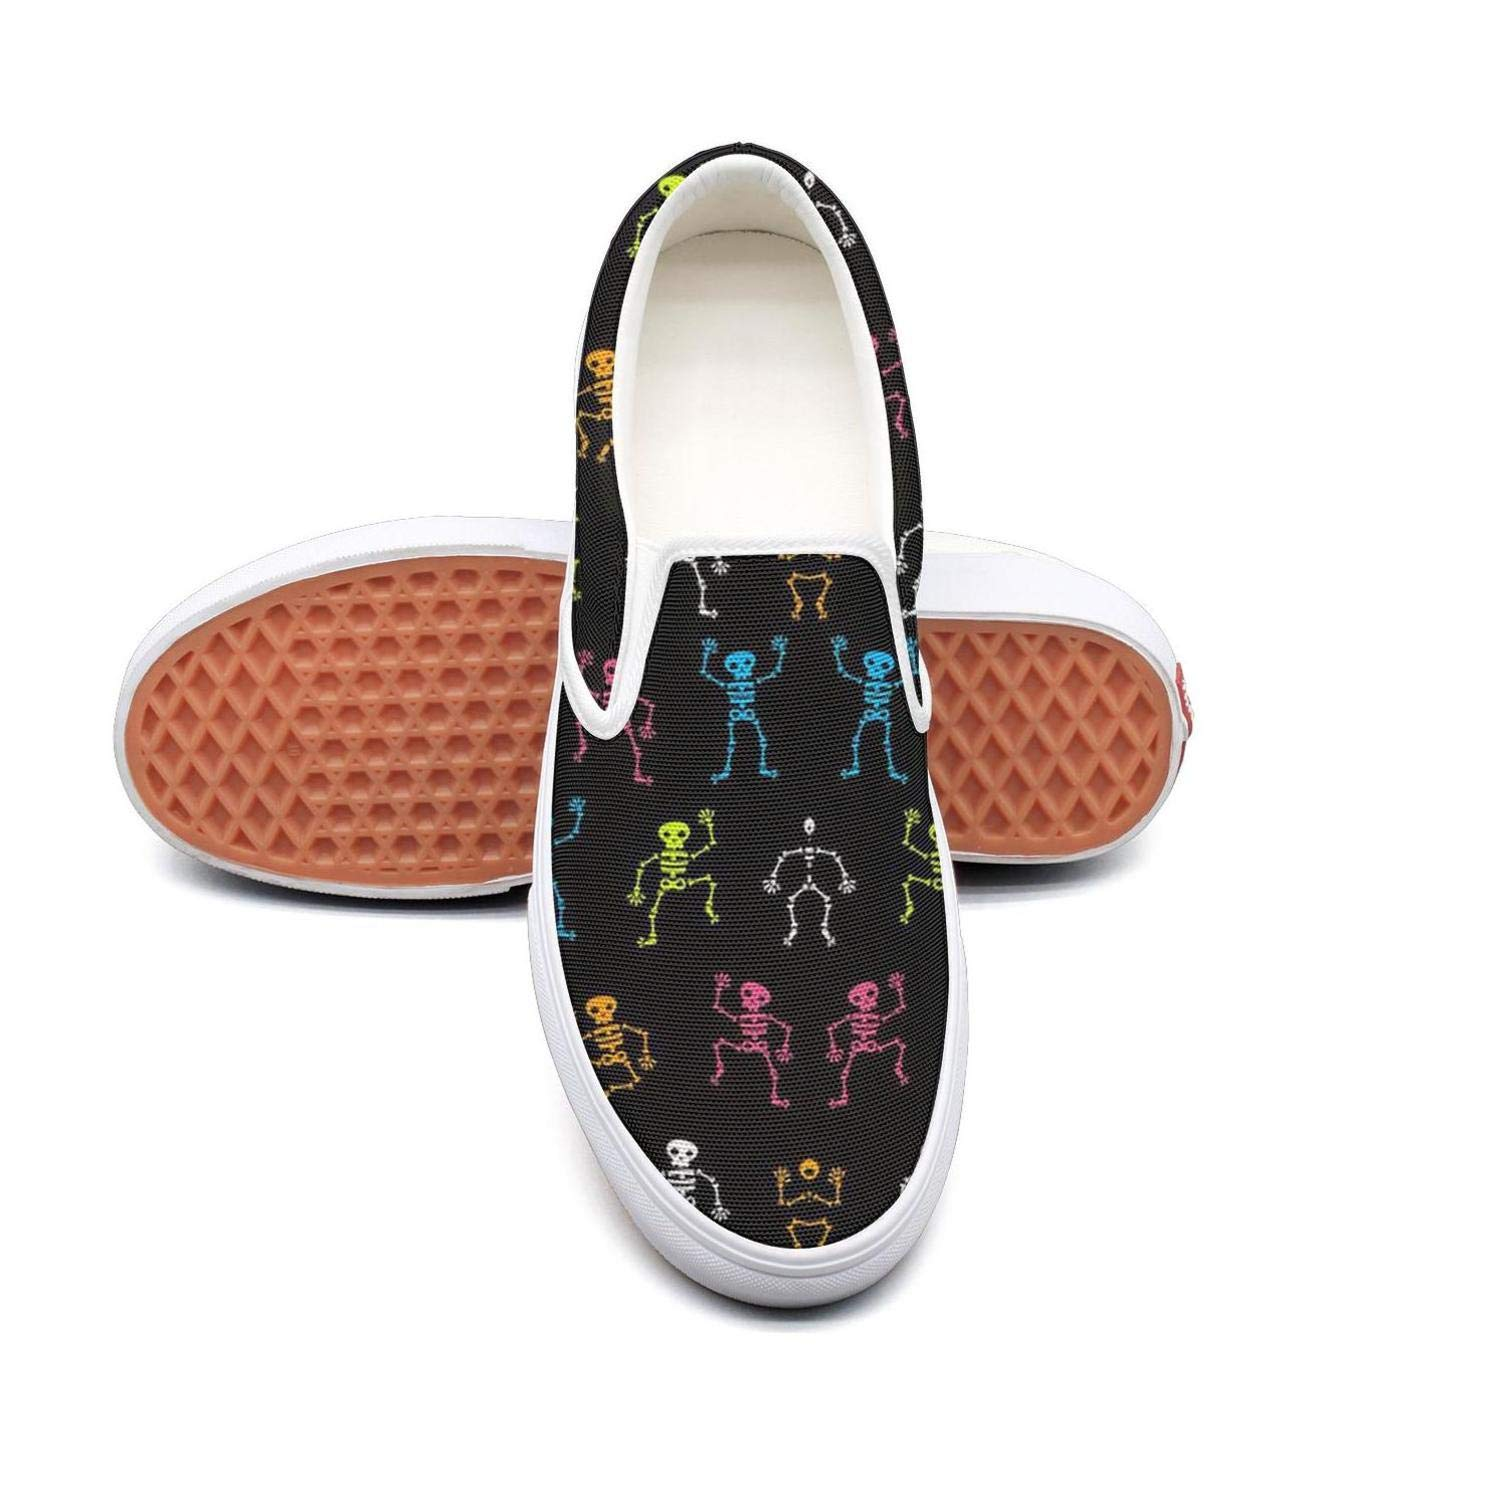 Back to School Music Skull Slip On Rubber Sole Loafers Canvas Shoes for Women Comfortable